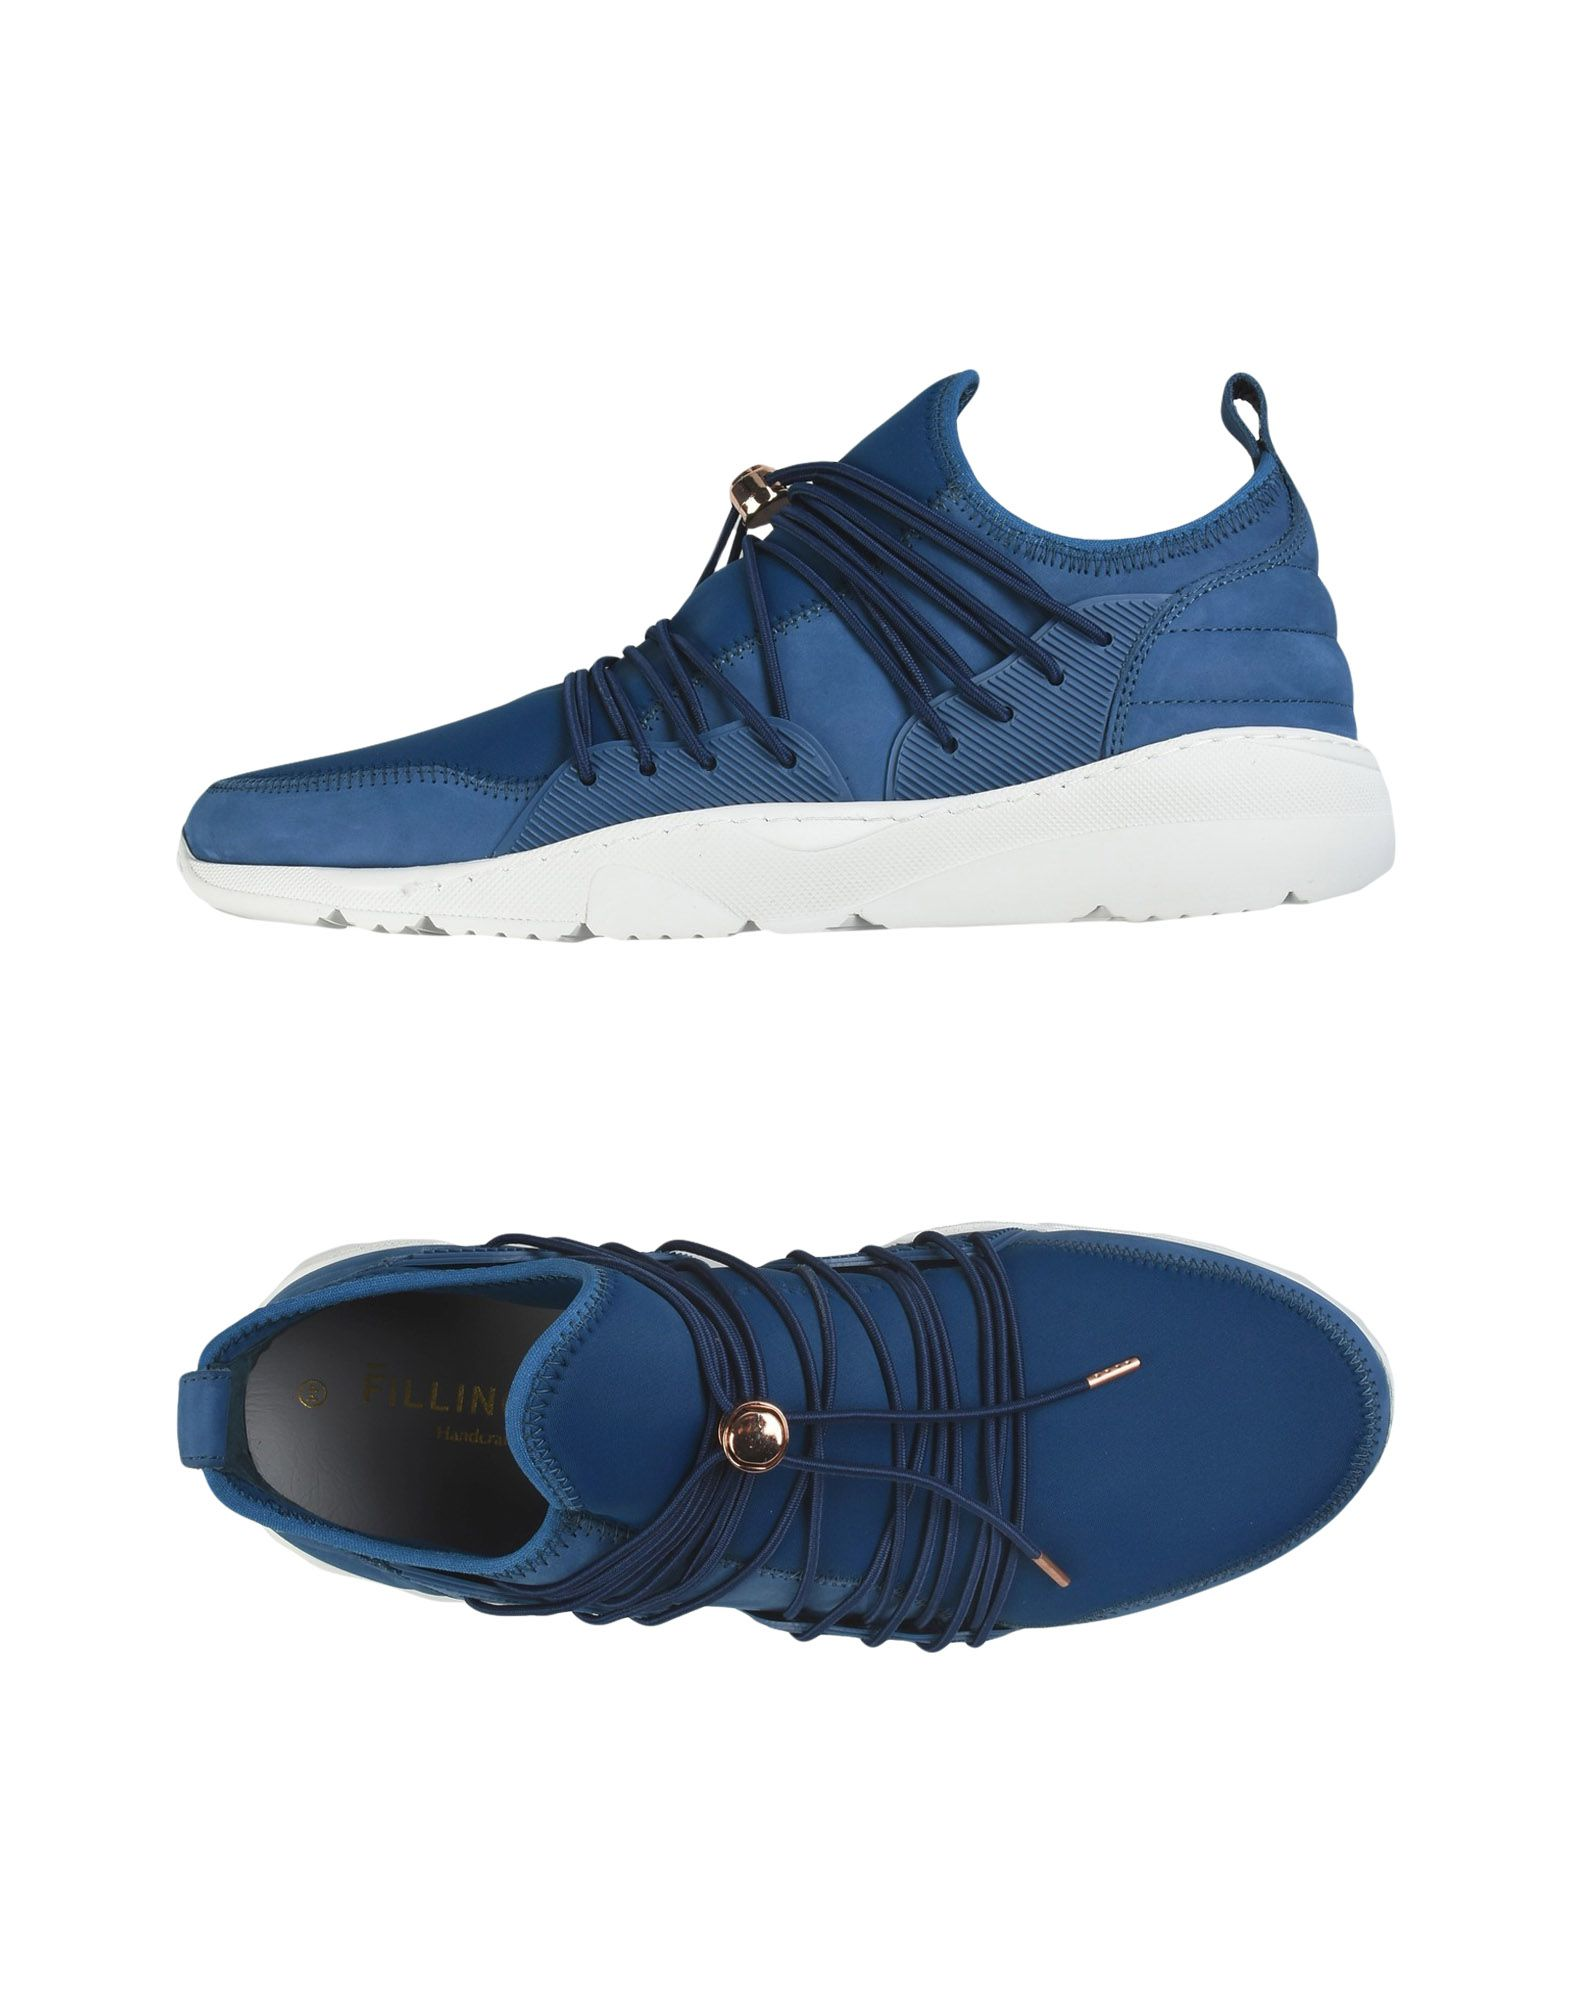 Sneakers Filling Pieces Runner 3.0 Low Laced - Homme - Sneakers Filling Pieces  Bleu Chaussures casual sauvages